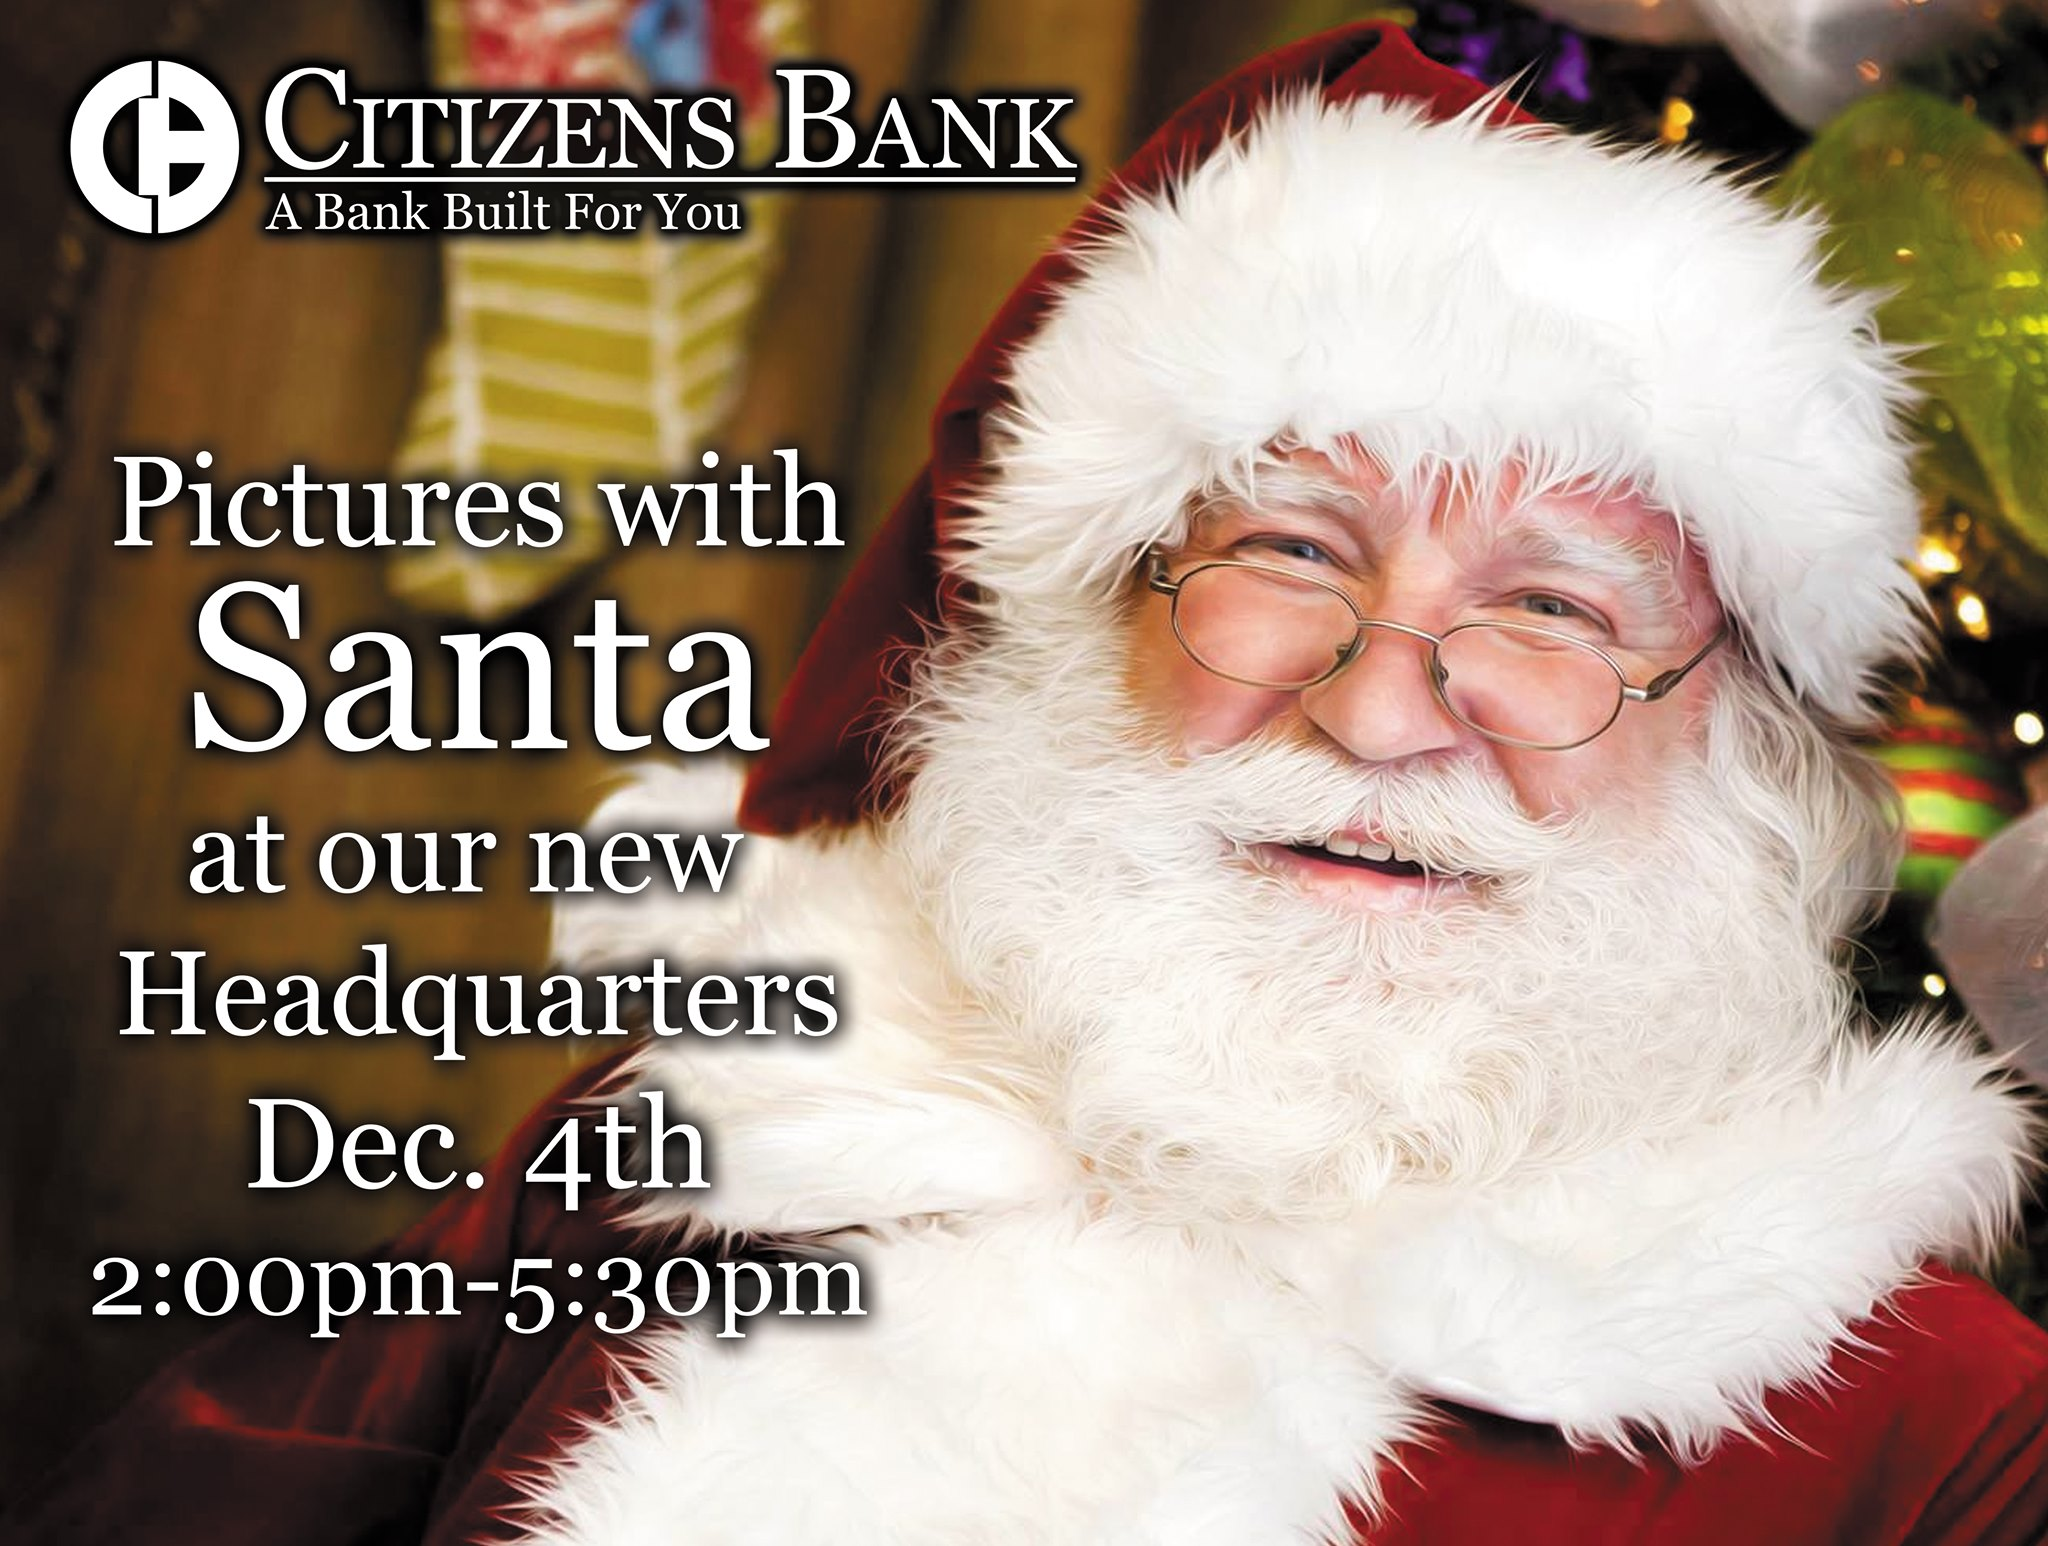 Citizens Bank presents Pictures with Santa